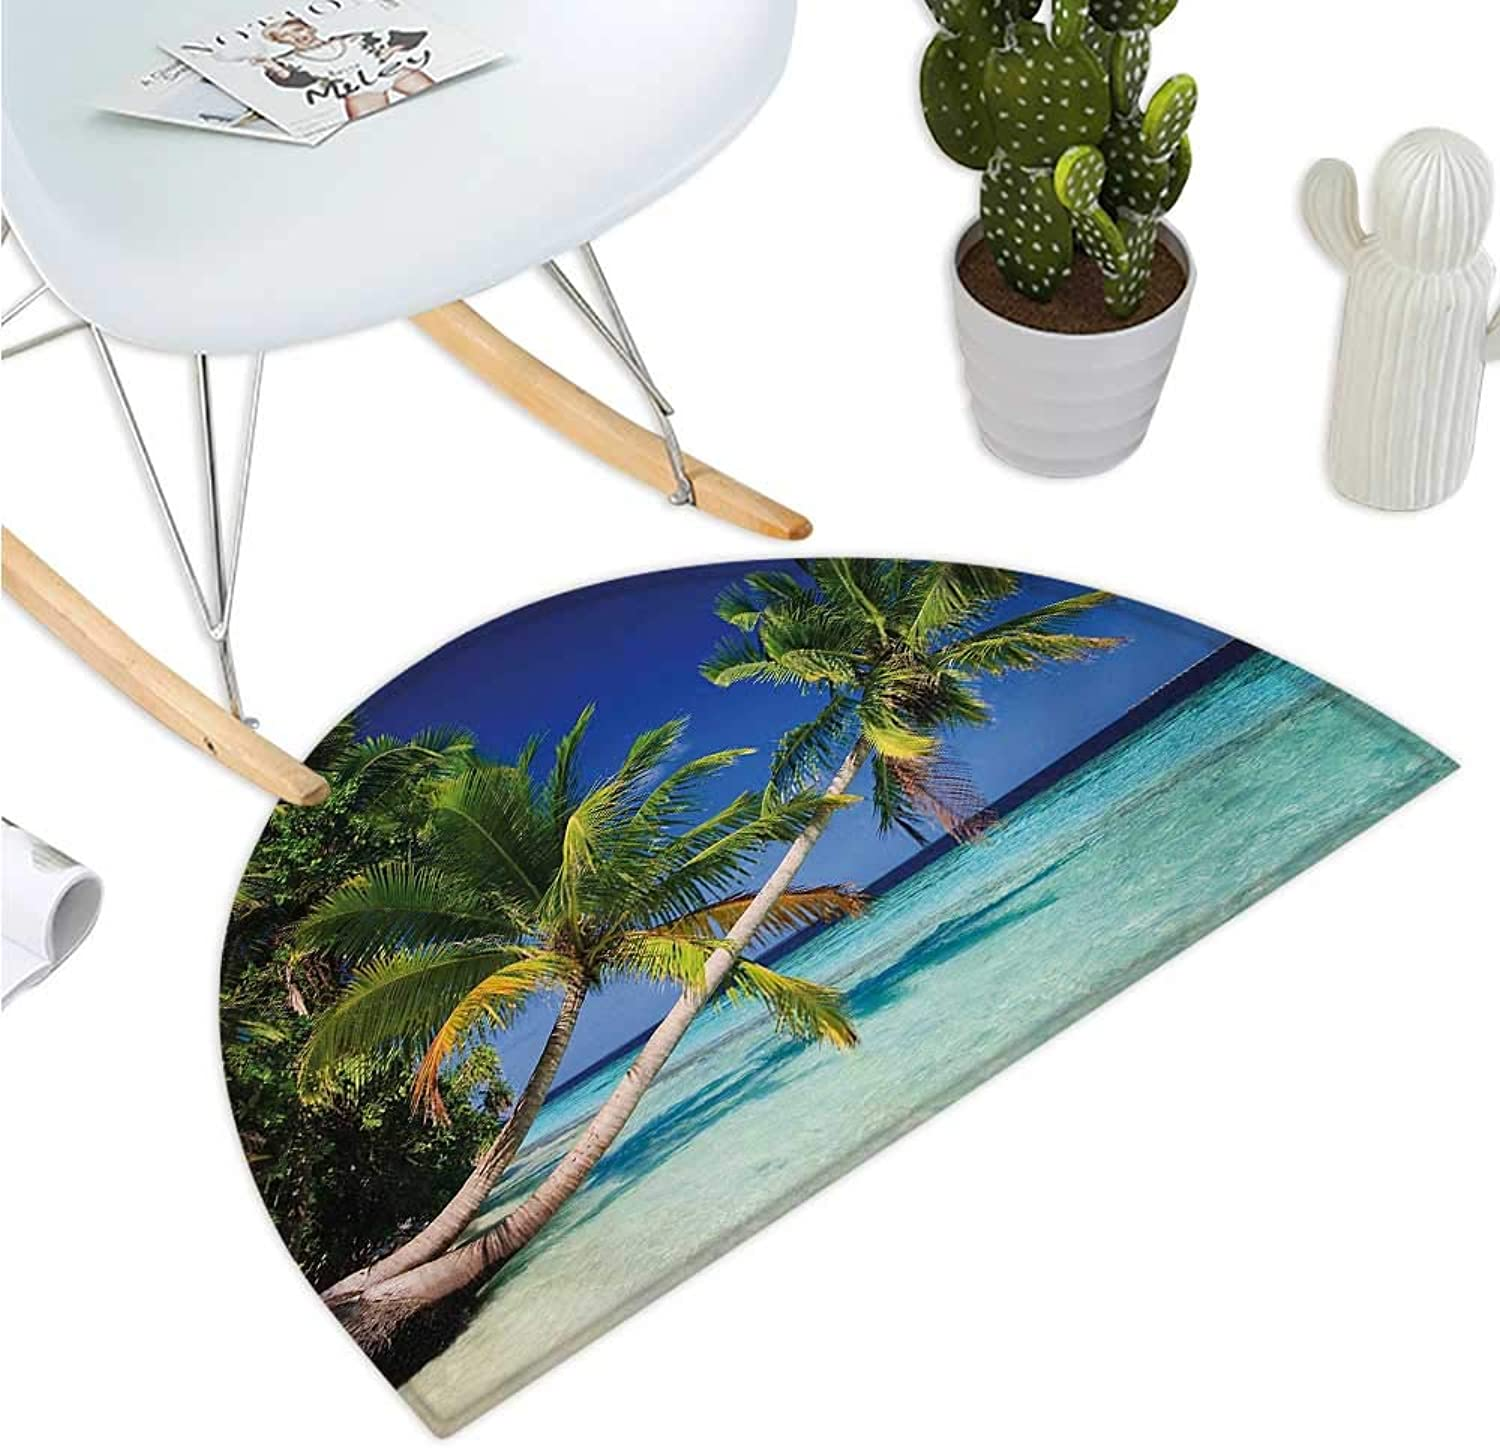 Landscape Semicircle Doormat Tropic Botanic Sandy Beach Island with Coconut Palm Trees Seaside Print Halfmoon doormats H 39.3  xD 59  Aqua bluee Green